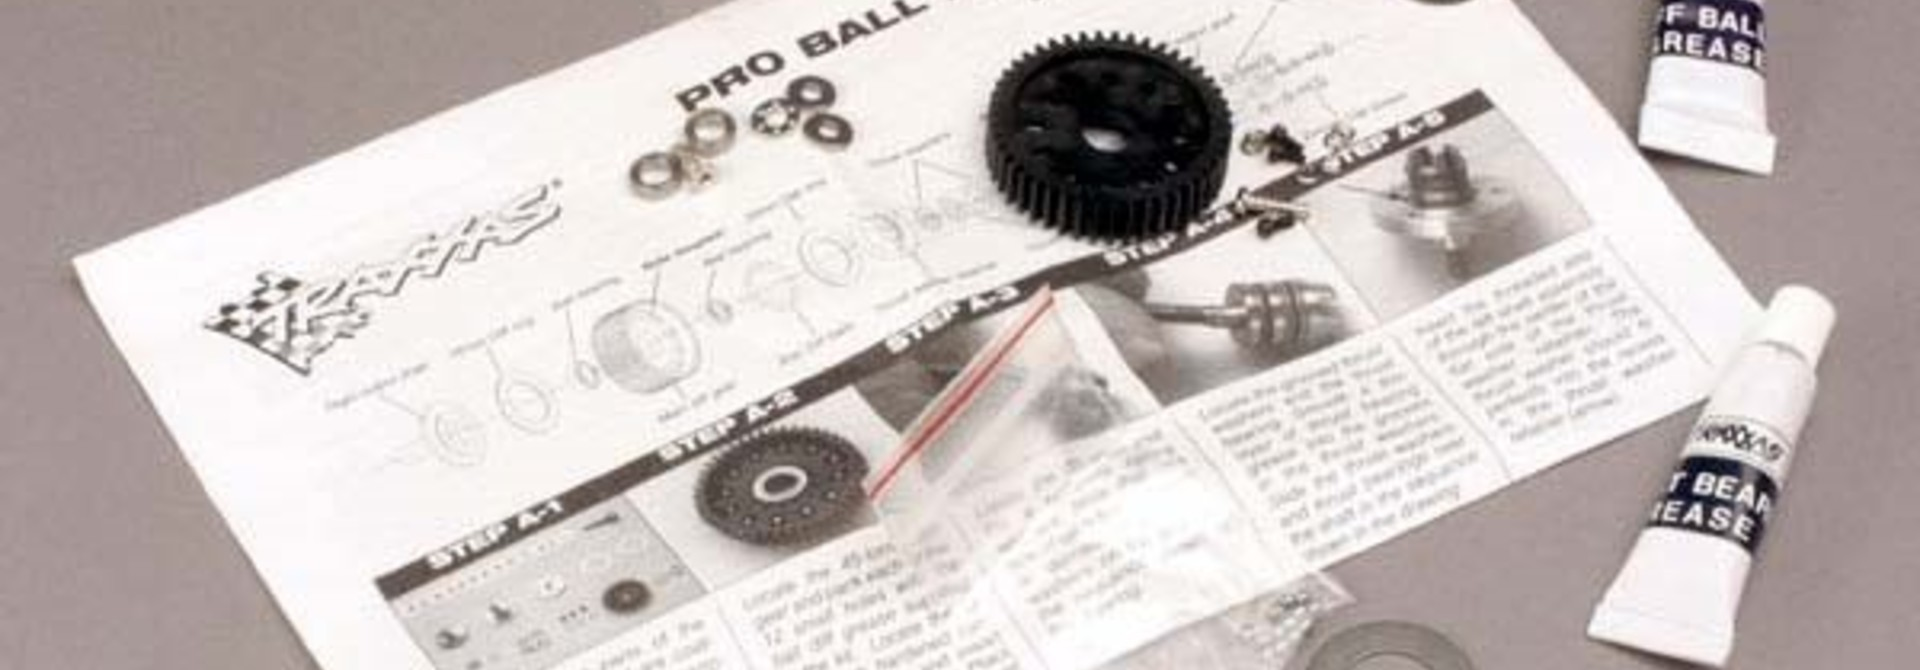 Ball differential, Pro-style (with bearings), TRX4420